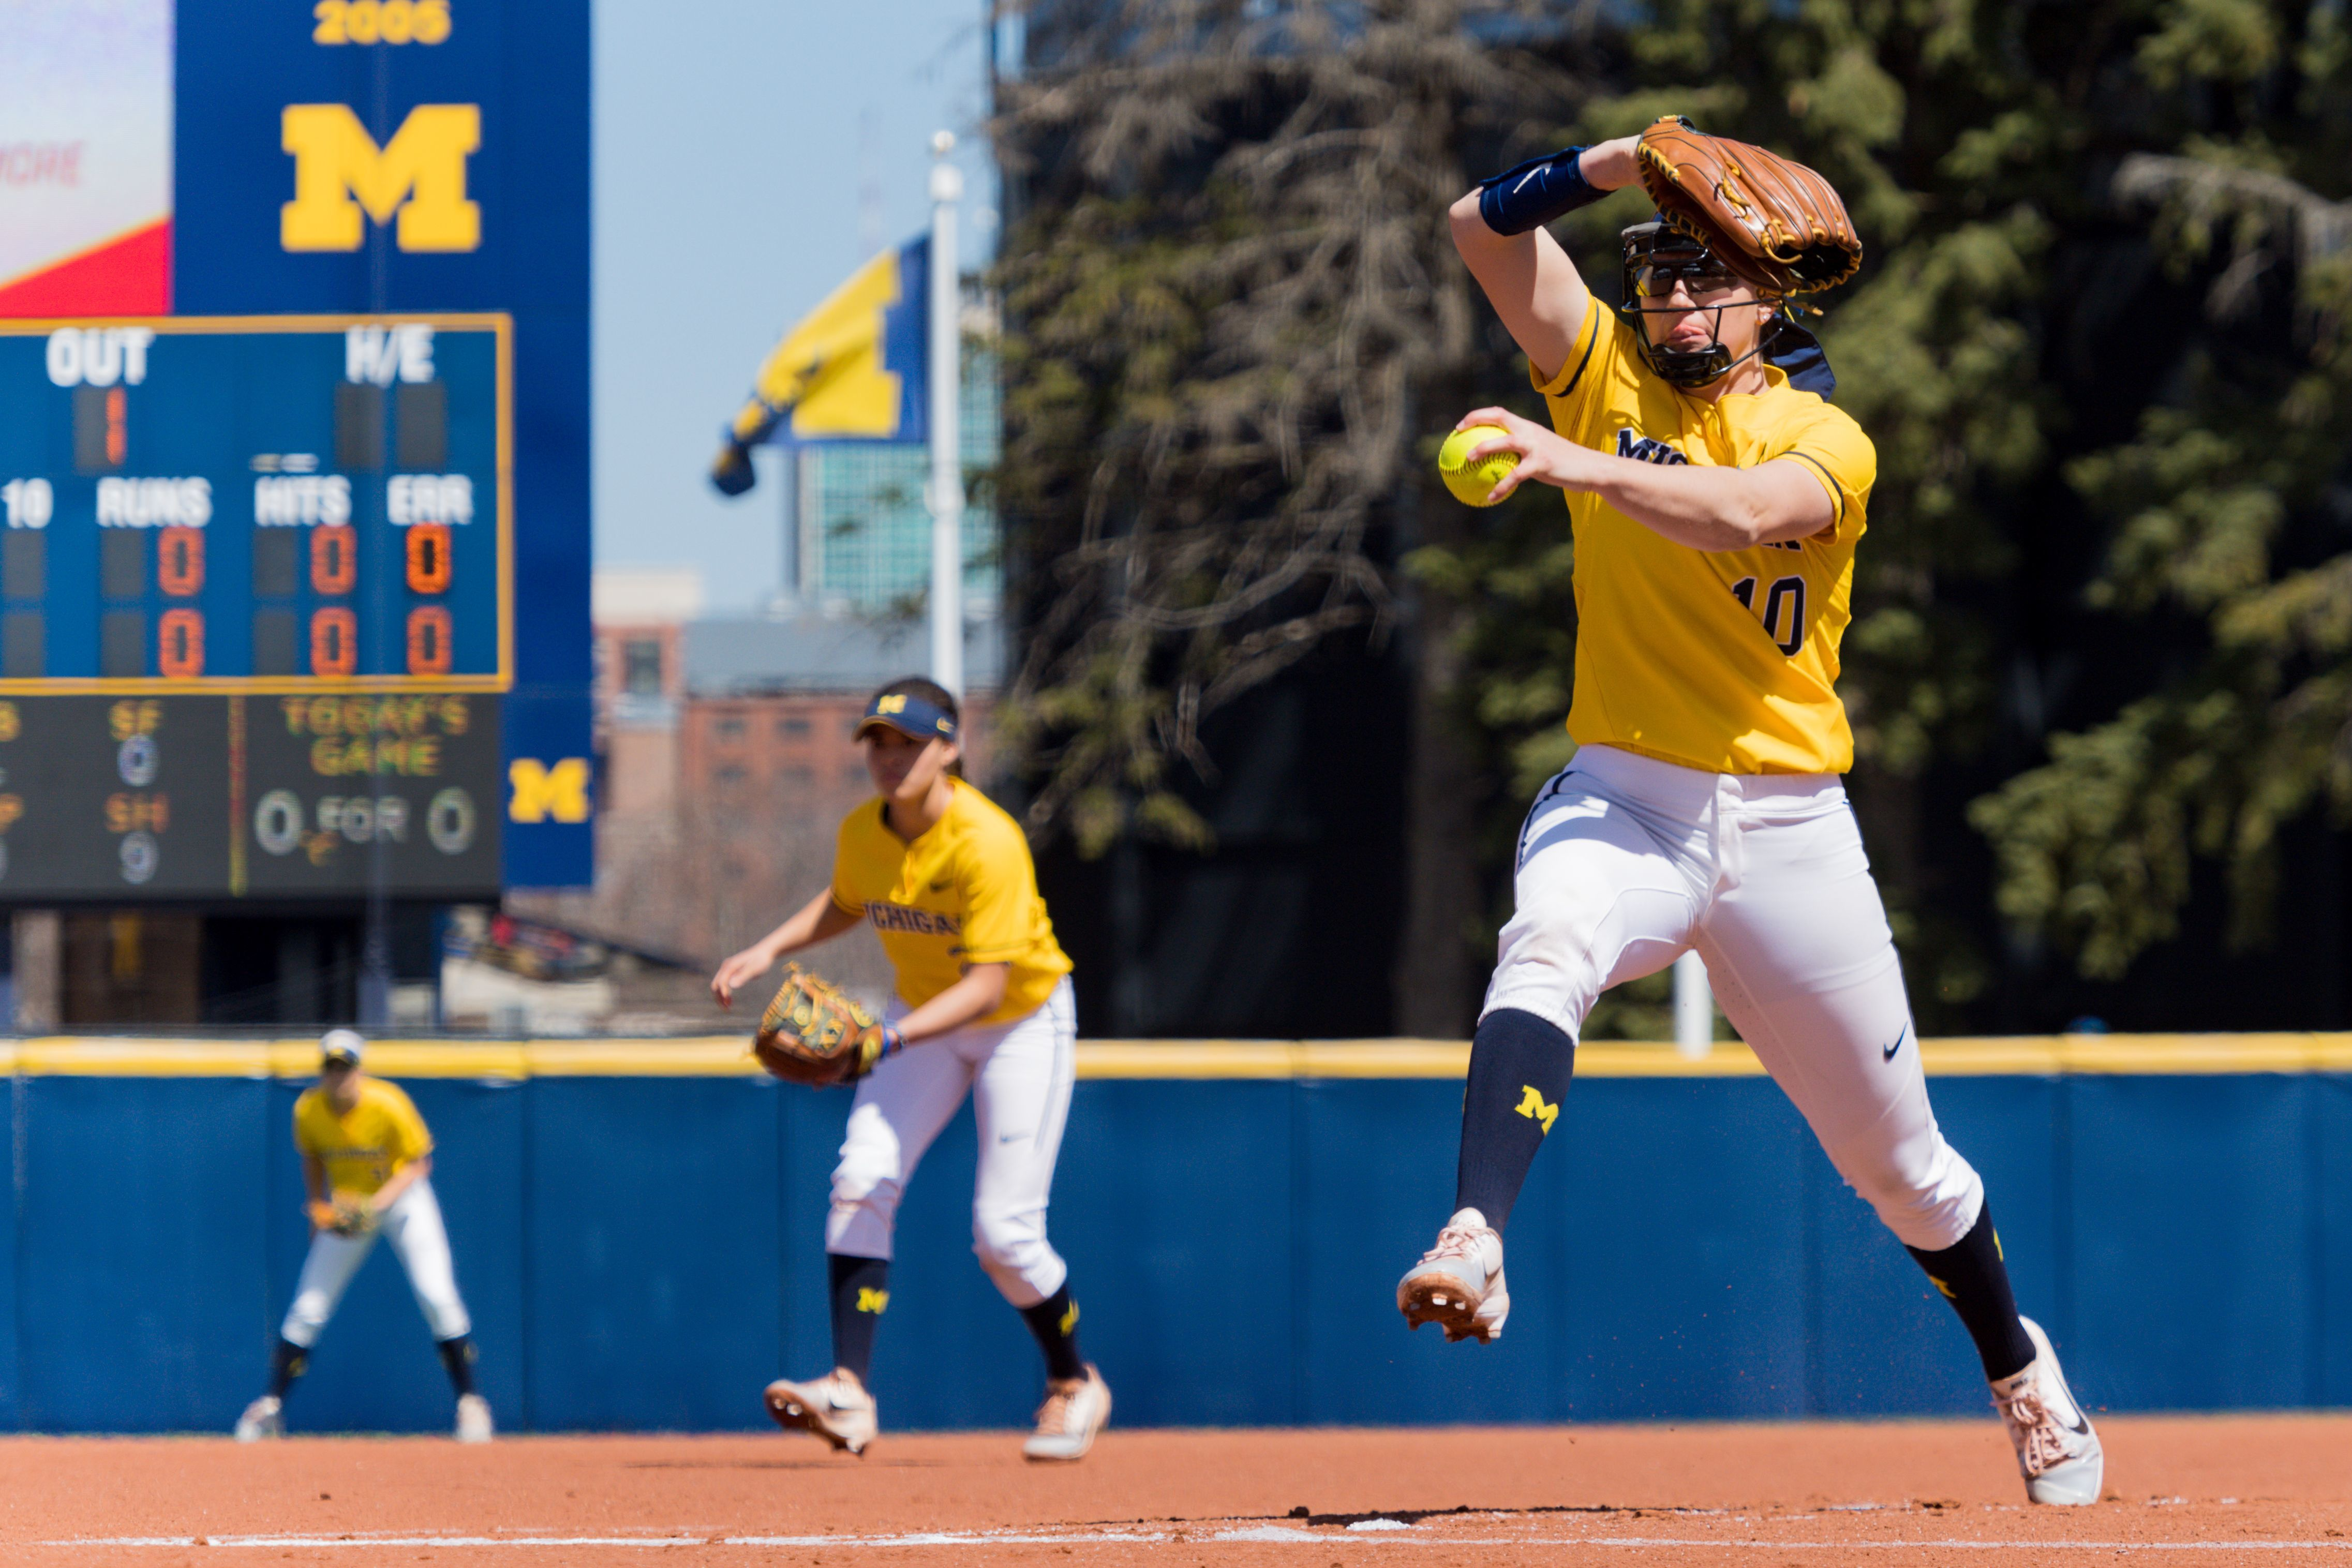 Michigan pitcher Meghan Beaubien throws against Maryland on April 22, 2018.